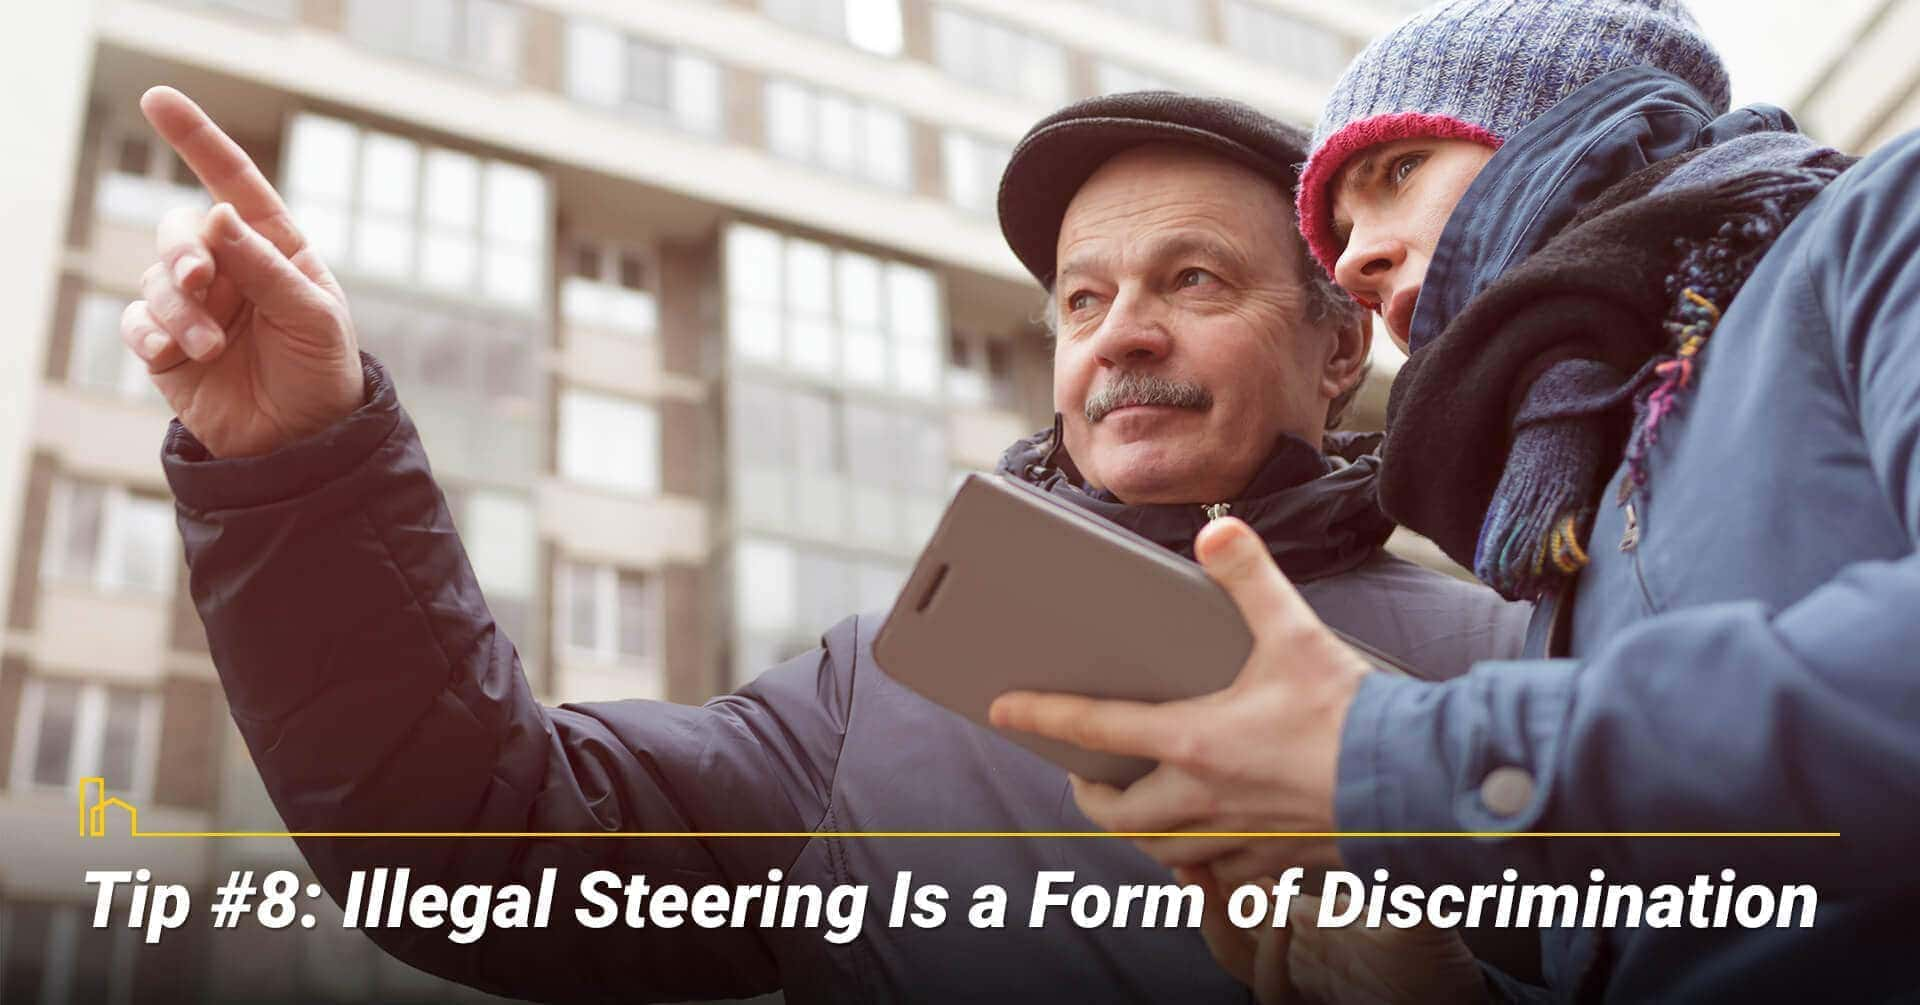 Tip #8: Illegal Steering Is a Form of Discrimination, beware of discrimination acts